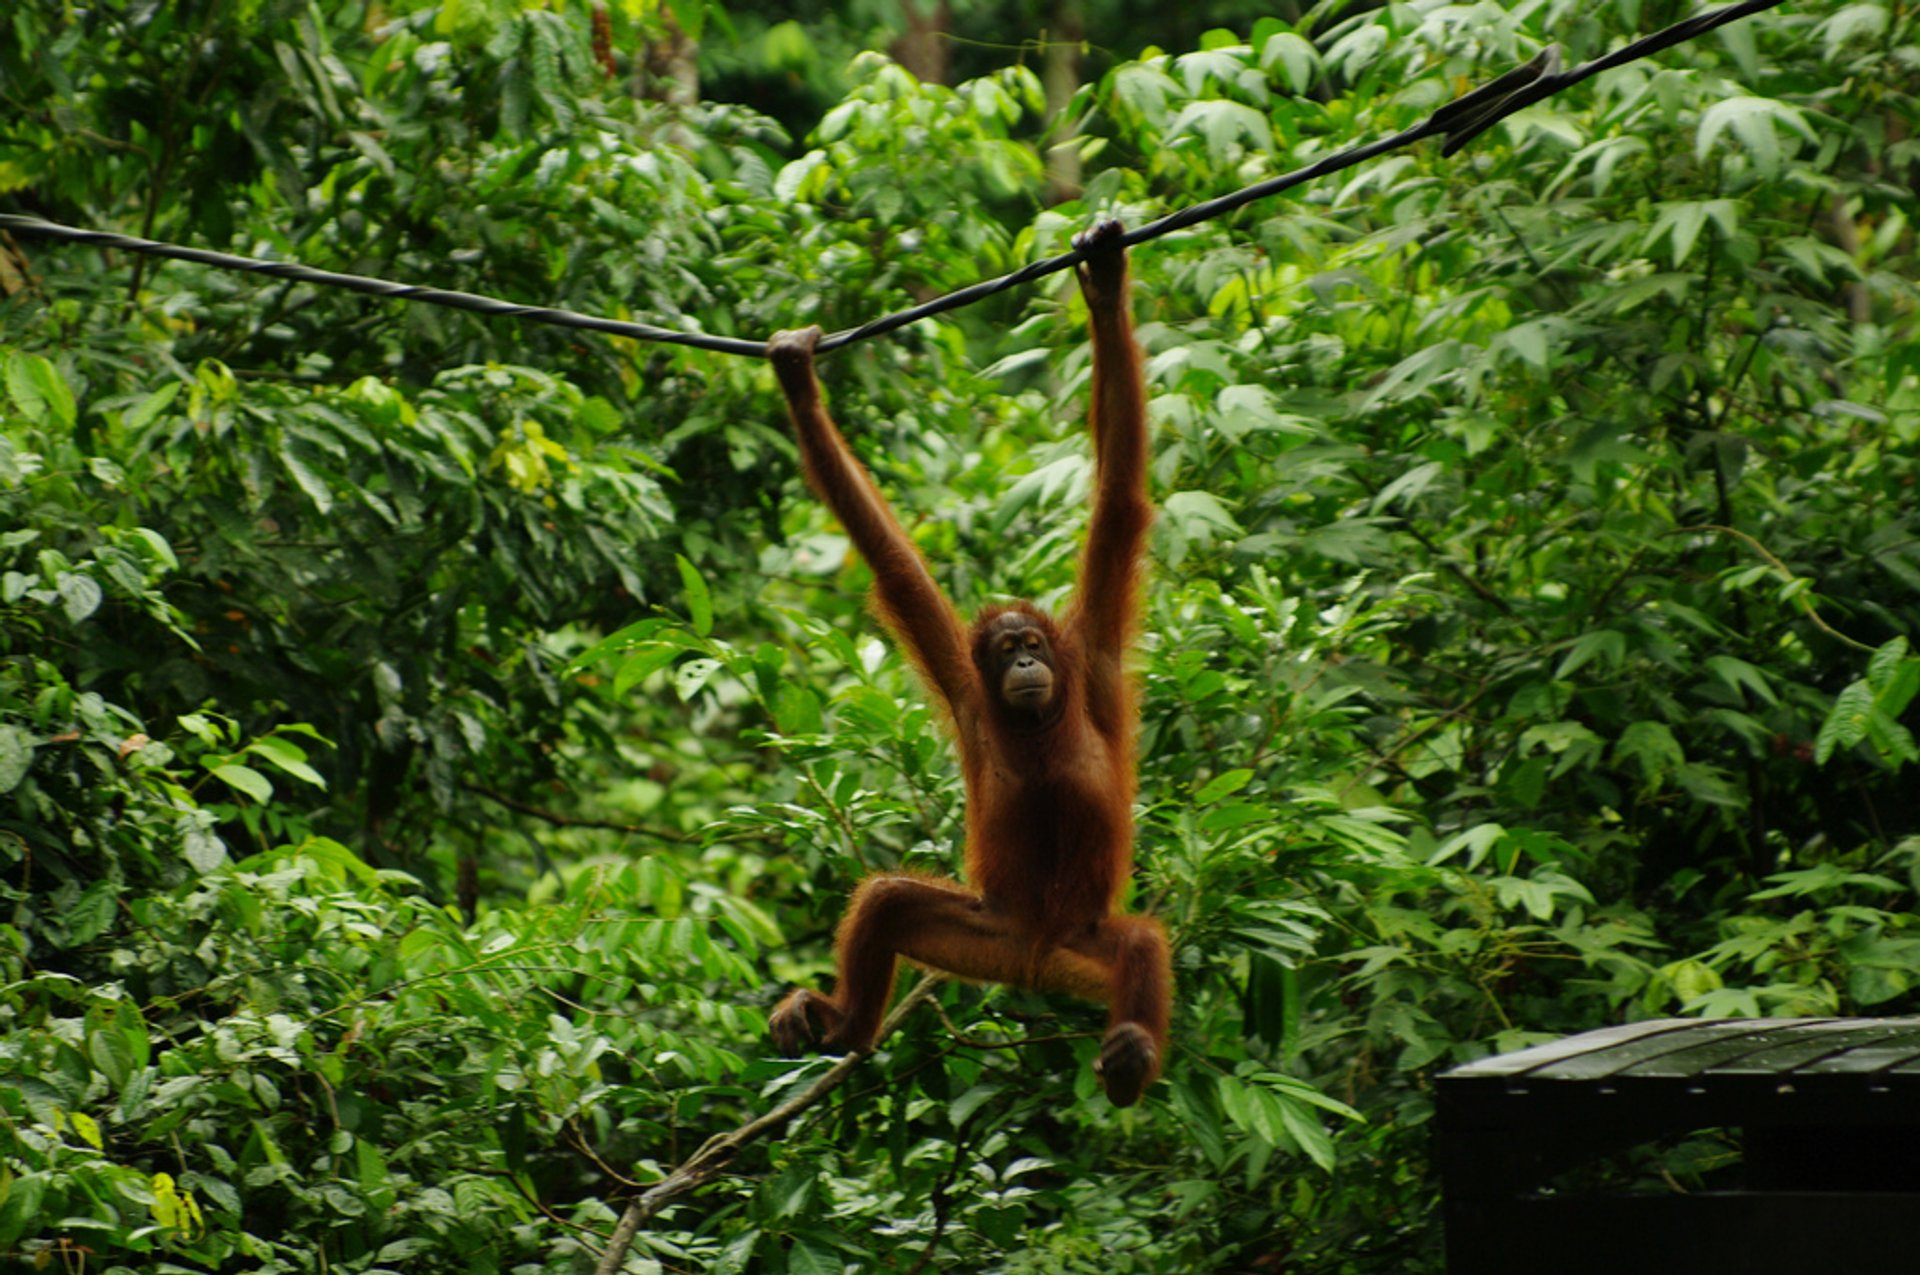 Best time to see Watching Orangutans in Malaysia 2020